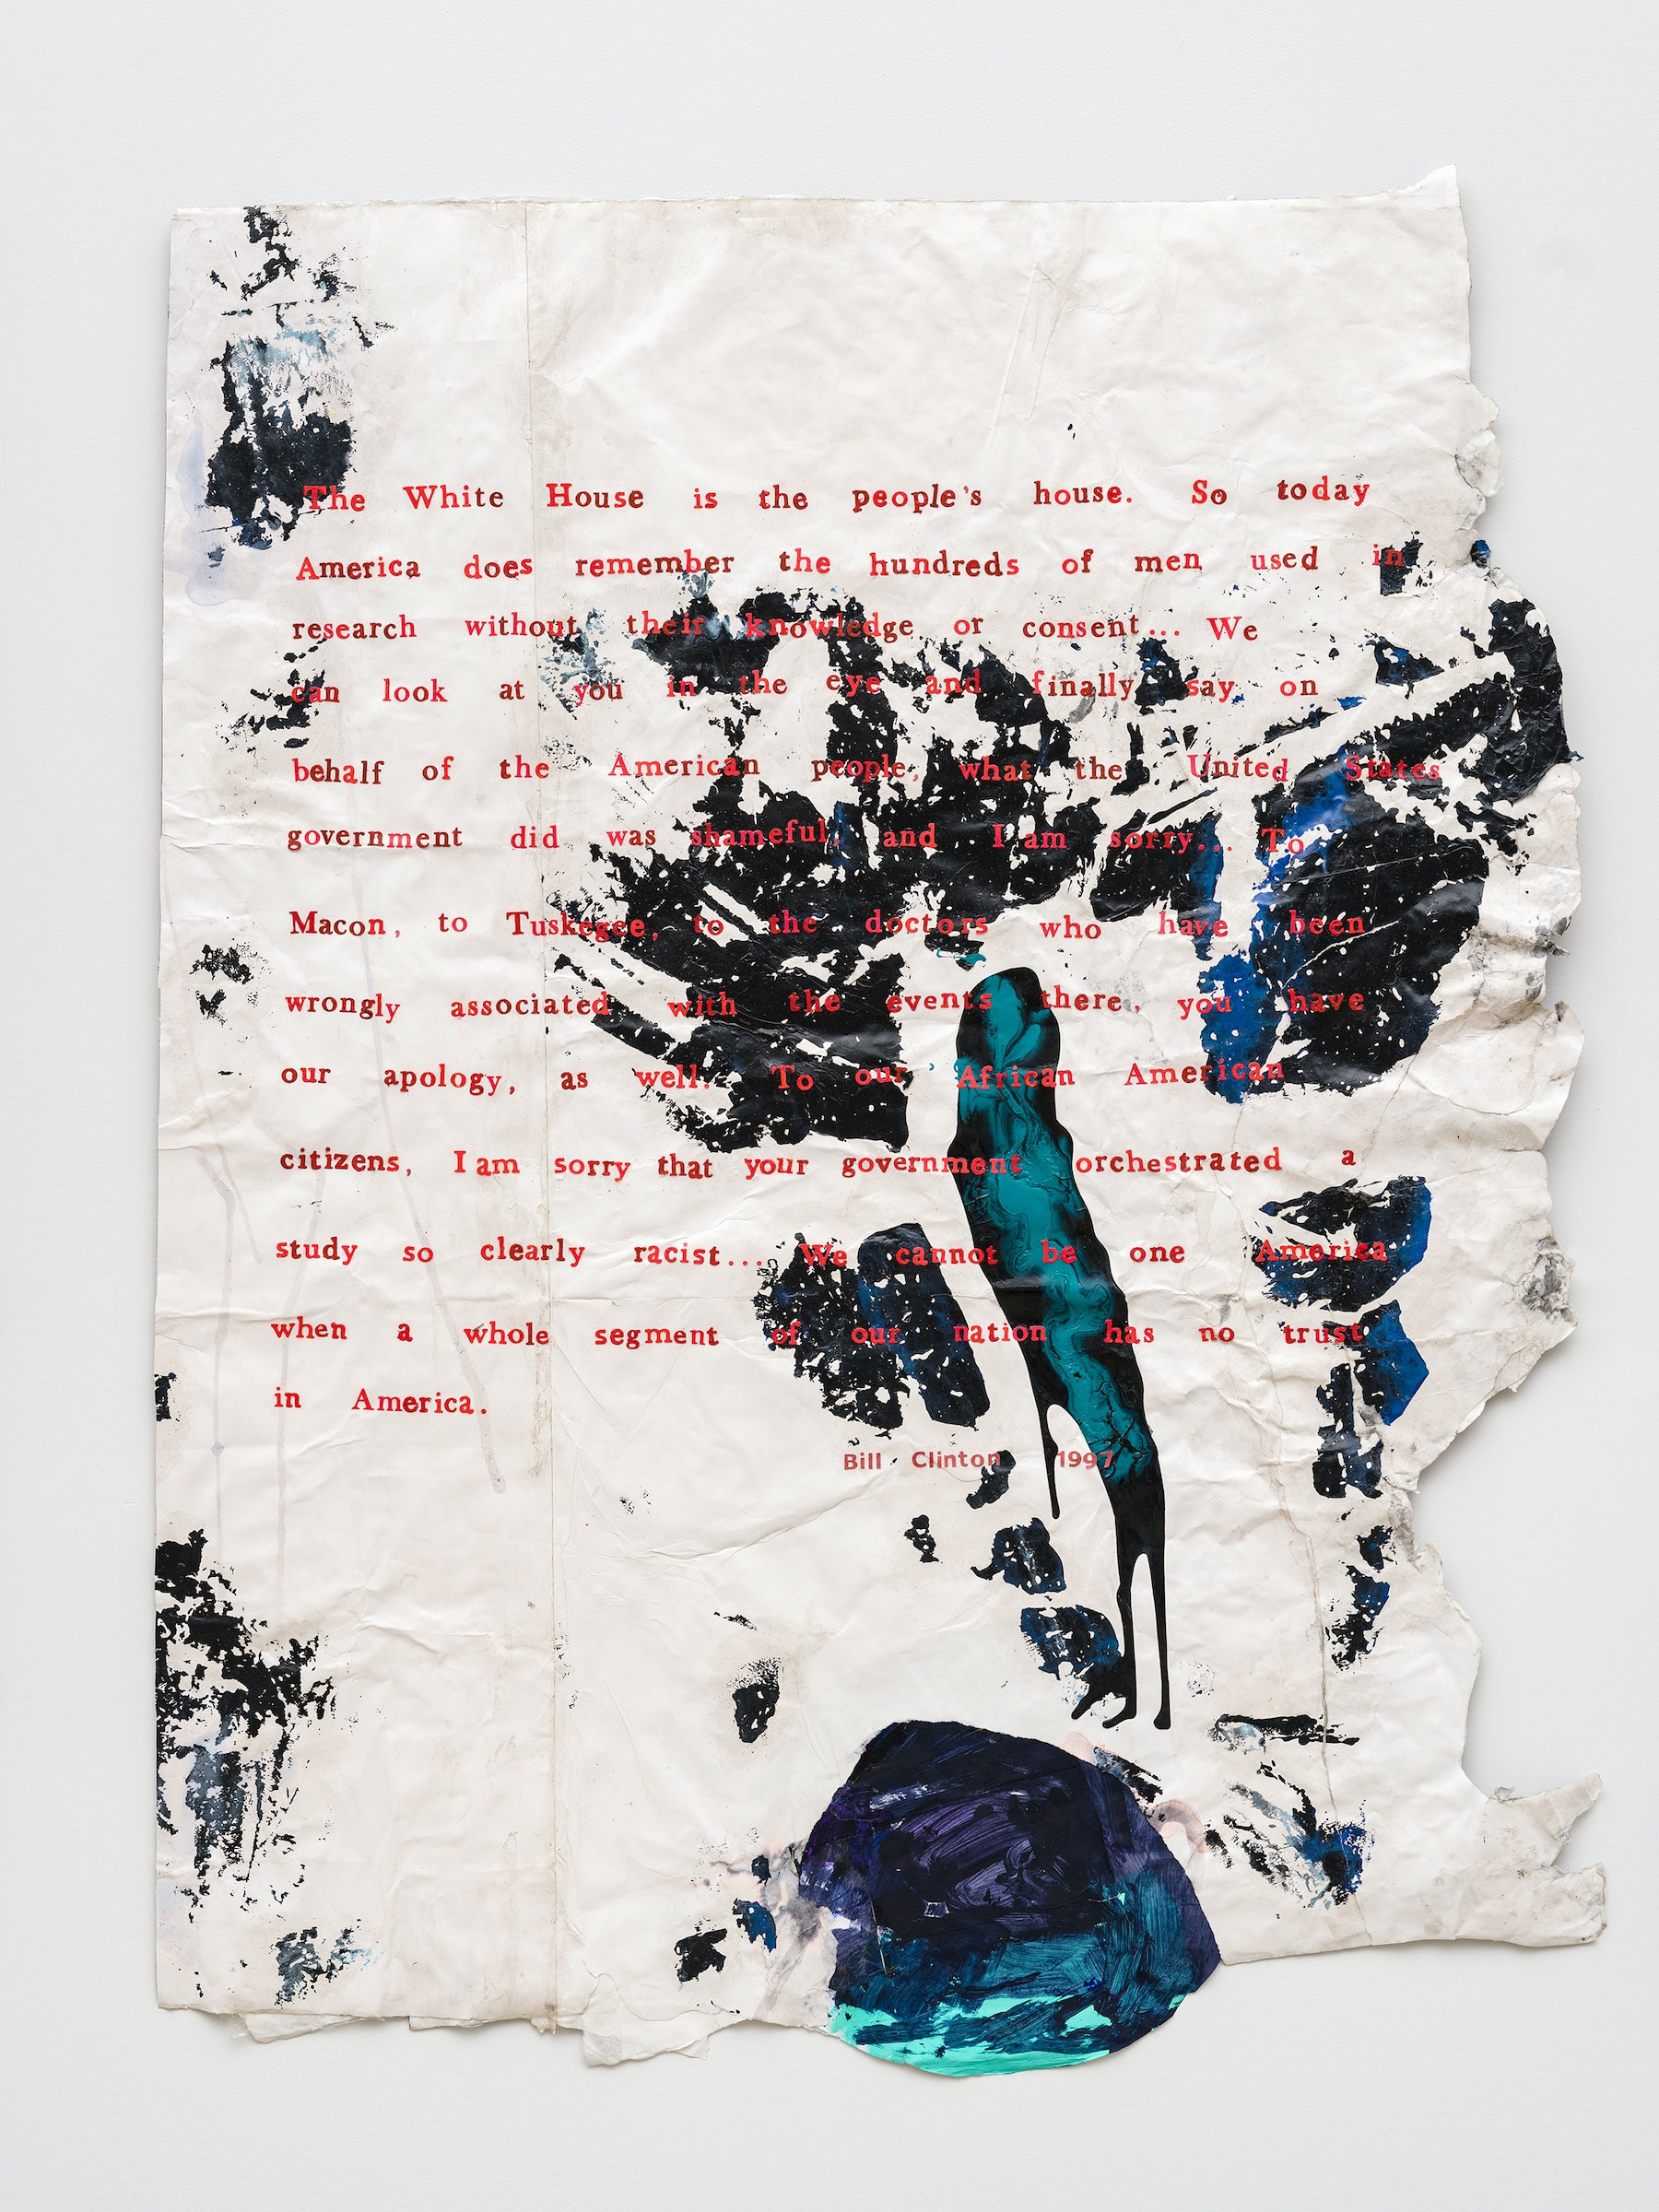 "Rodney McMillian ""President Bill Clinton, May 16, 1997 - Apology for study done in Tuskeegee (US Public Health Service Syphillis Study at Tuskeegee),"" 2020 Ink, acrylic, latex, paper, on paper mounted on canvas 53 x 42"" [HxW] (134.62 x 106.68 cm) Inventory #MCR411 Courtesy of the artist and Vielmetter Los Angeles Photo credit: Jeff Mclane"